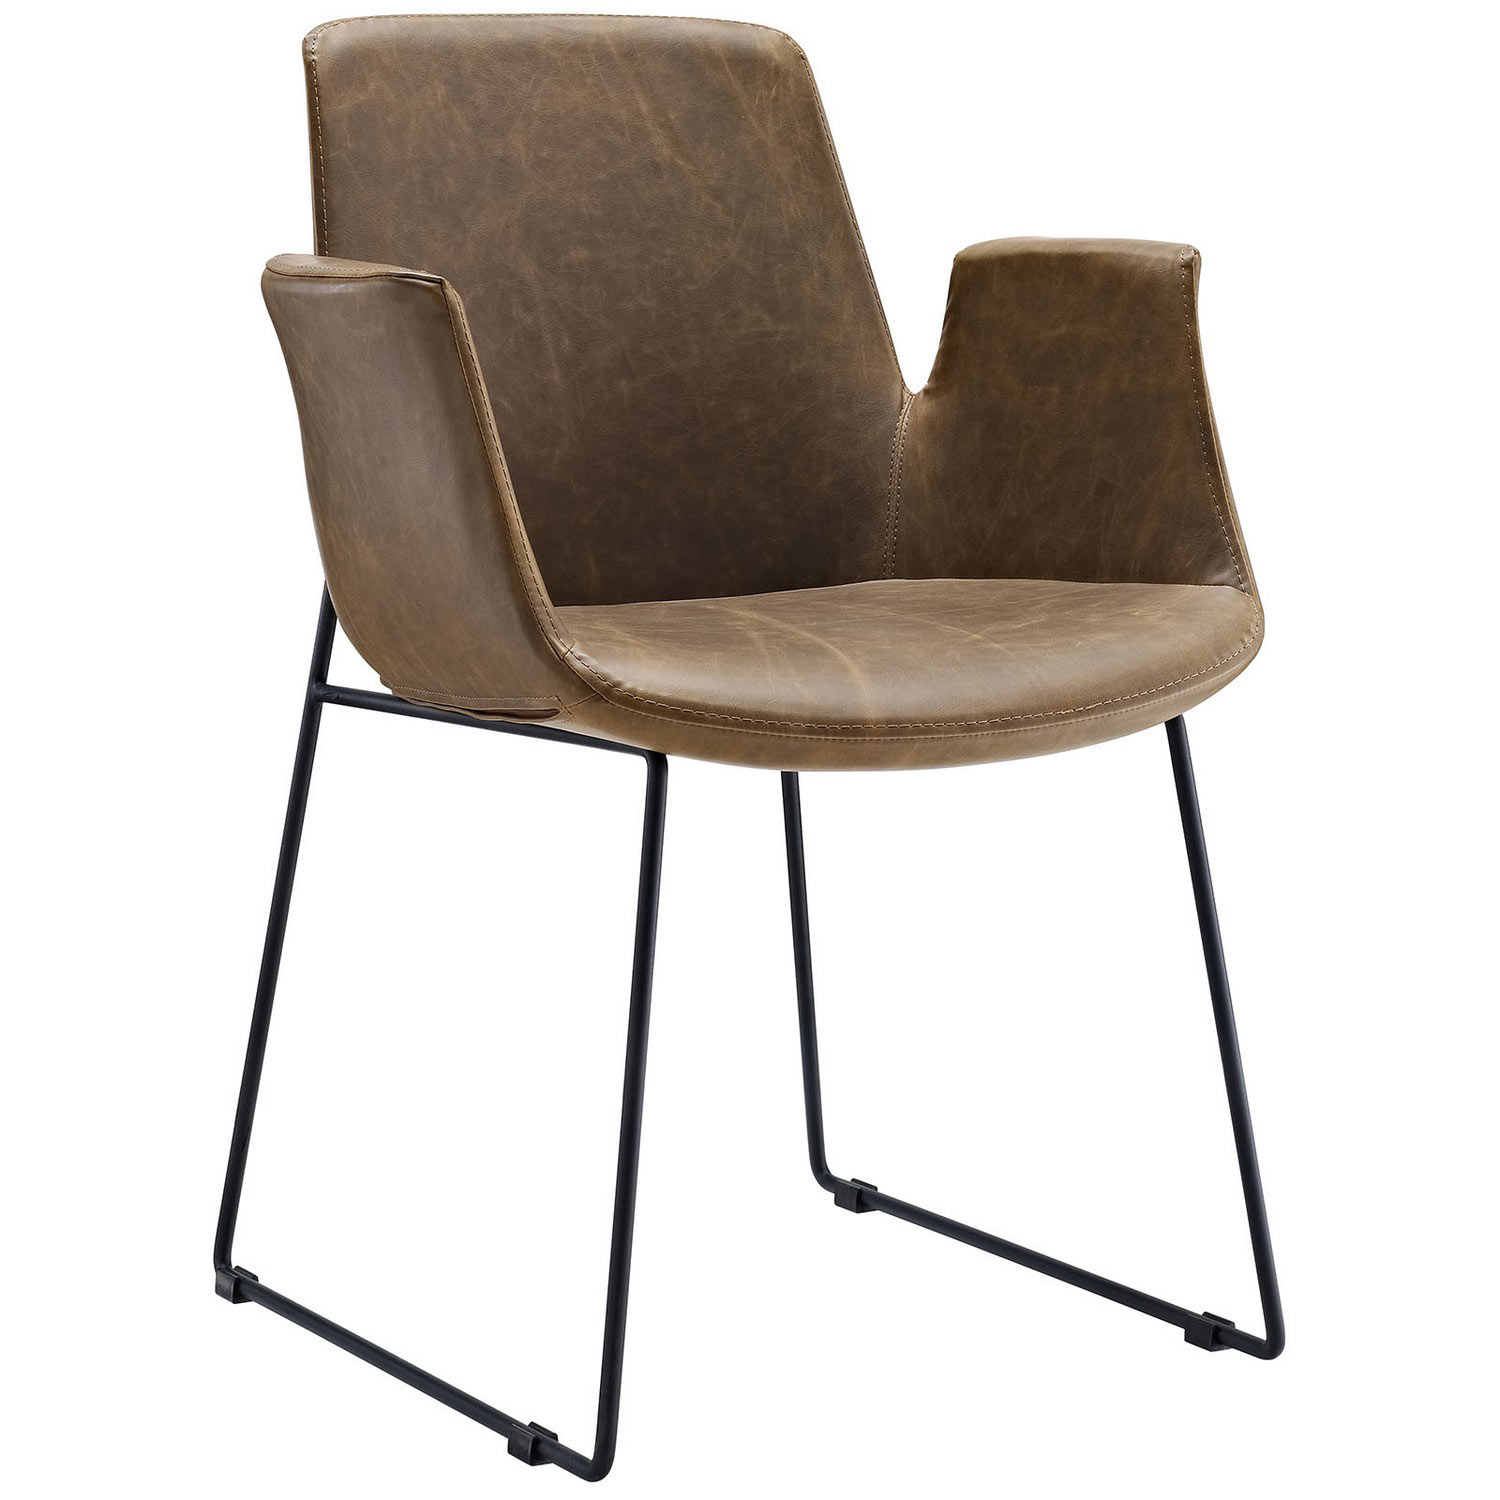 Modway Aloft Dining Arm Chair - Brown